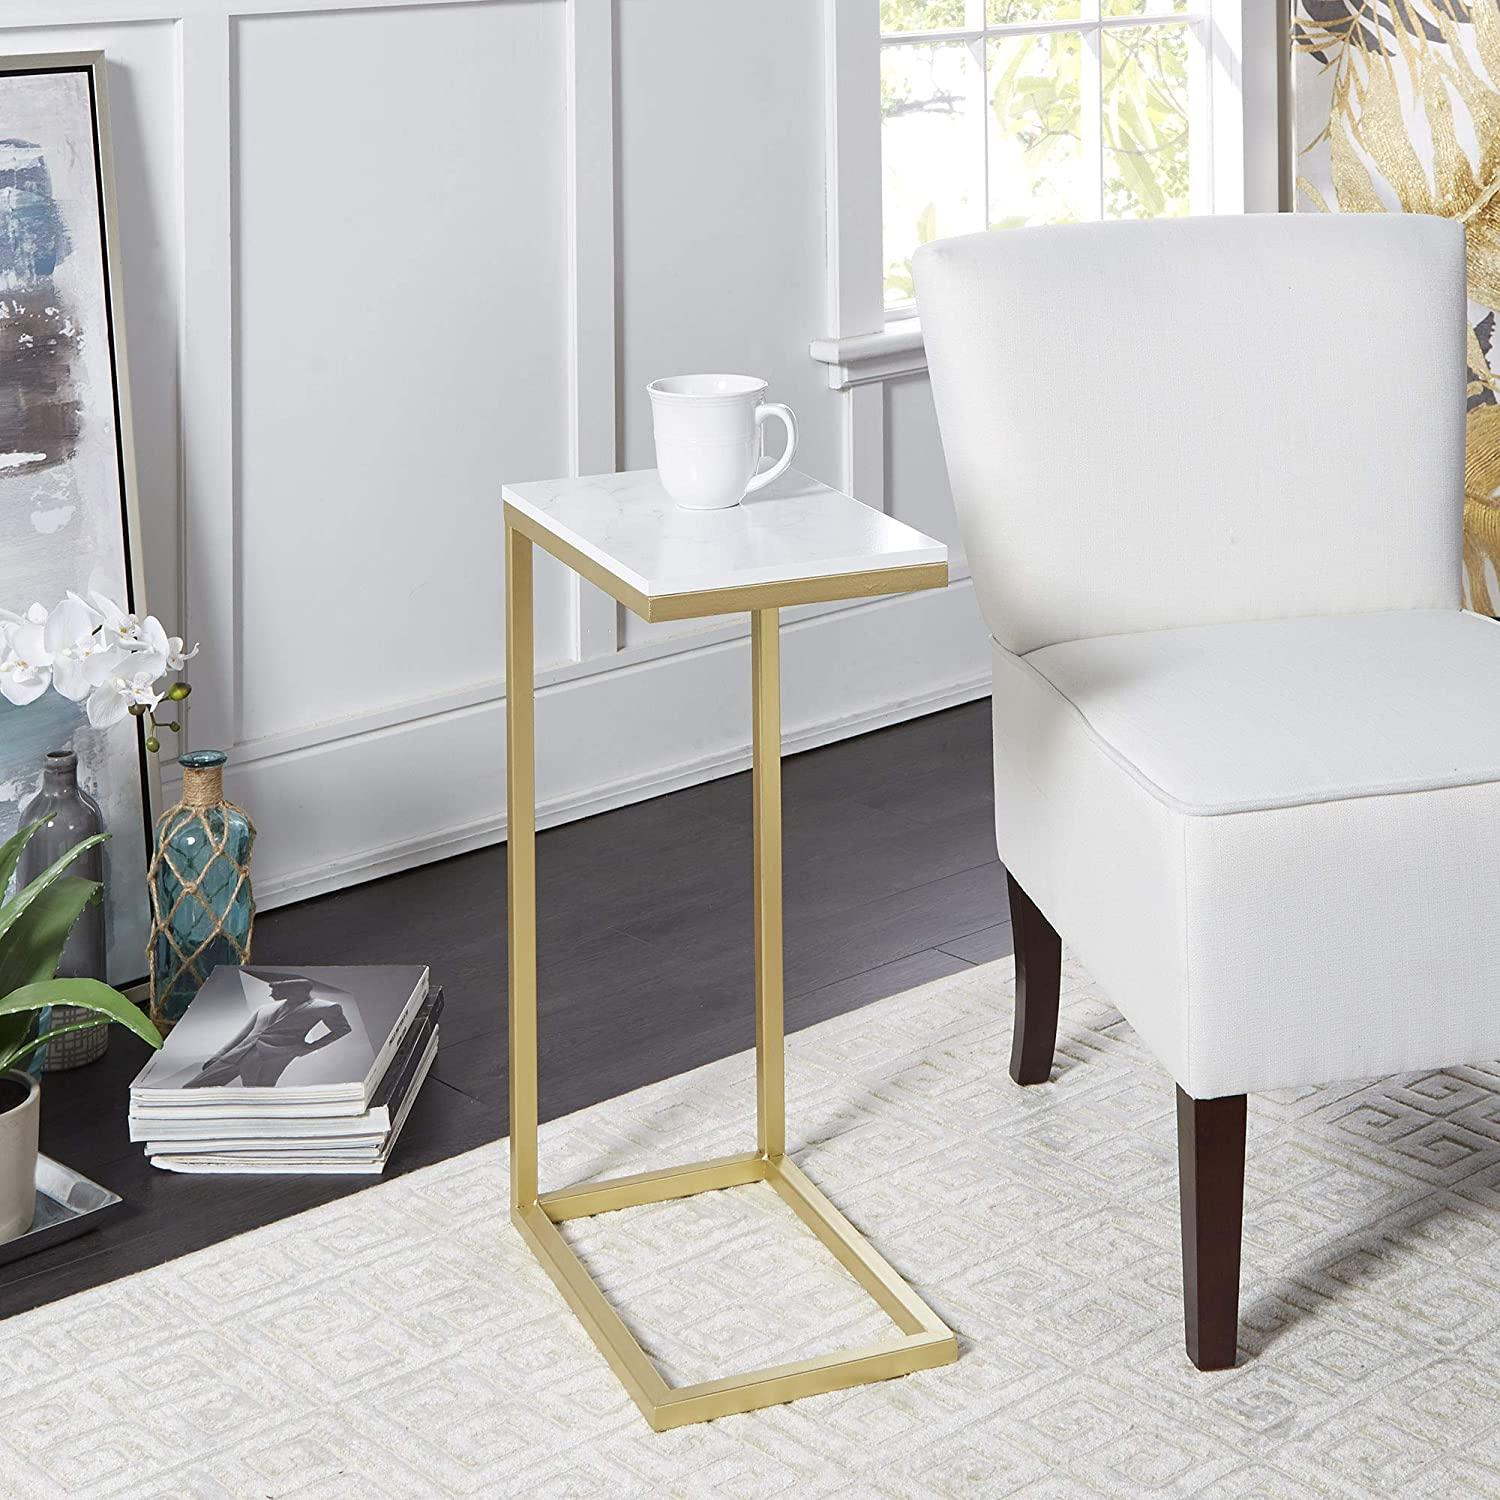 B7c63 safdie co lvth 81053z01 white furnitures cabinets safdie co accent table 19l c shaped white gold metal 50 8 x 30 5 x 61 centimeters